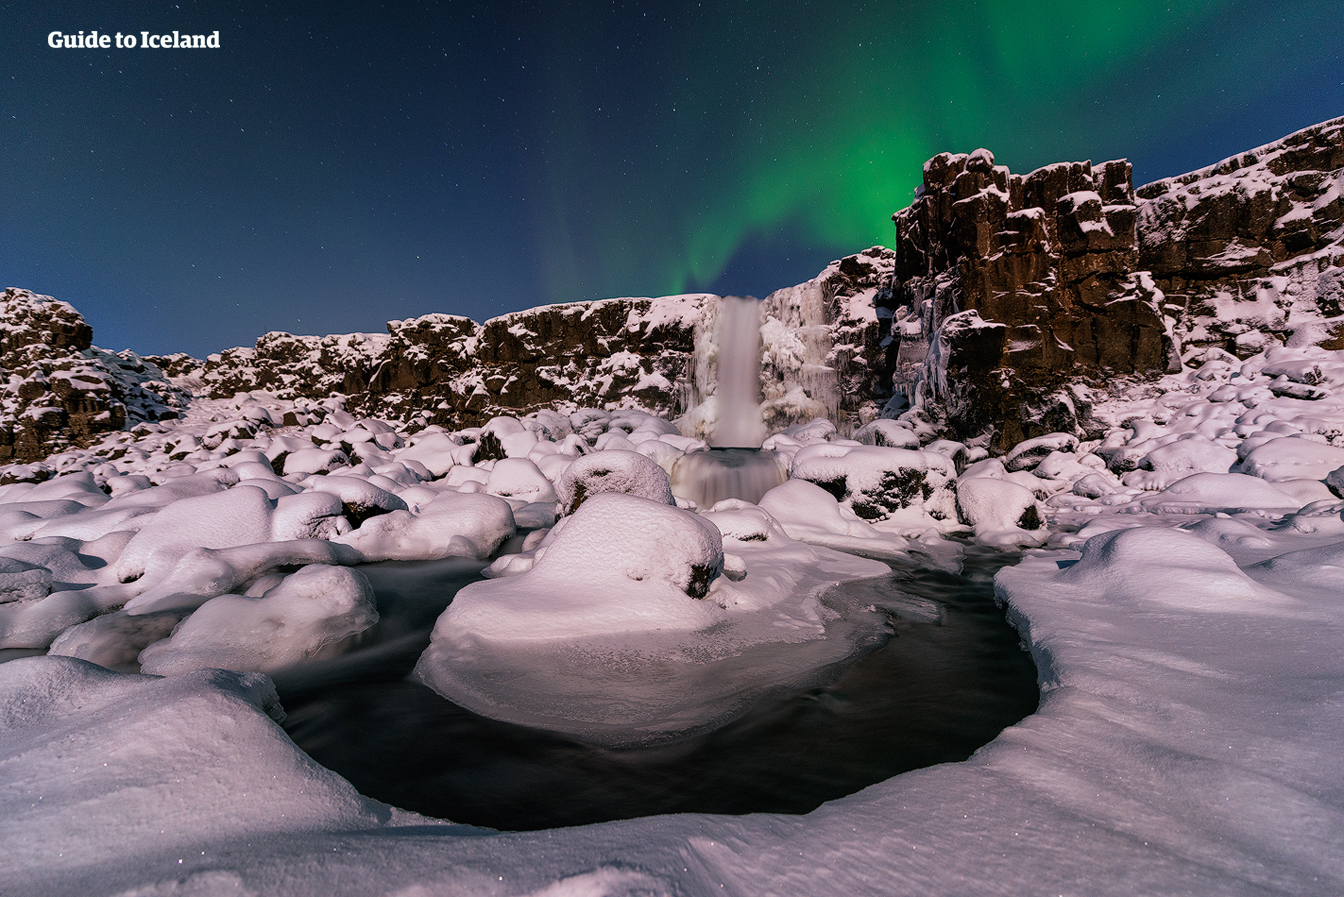 Öxarárfoss is a waterfall in south-west Iceland, pictured under the northern lights in winter.